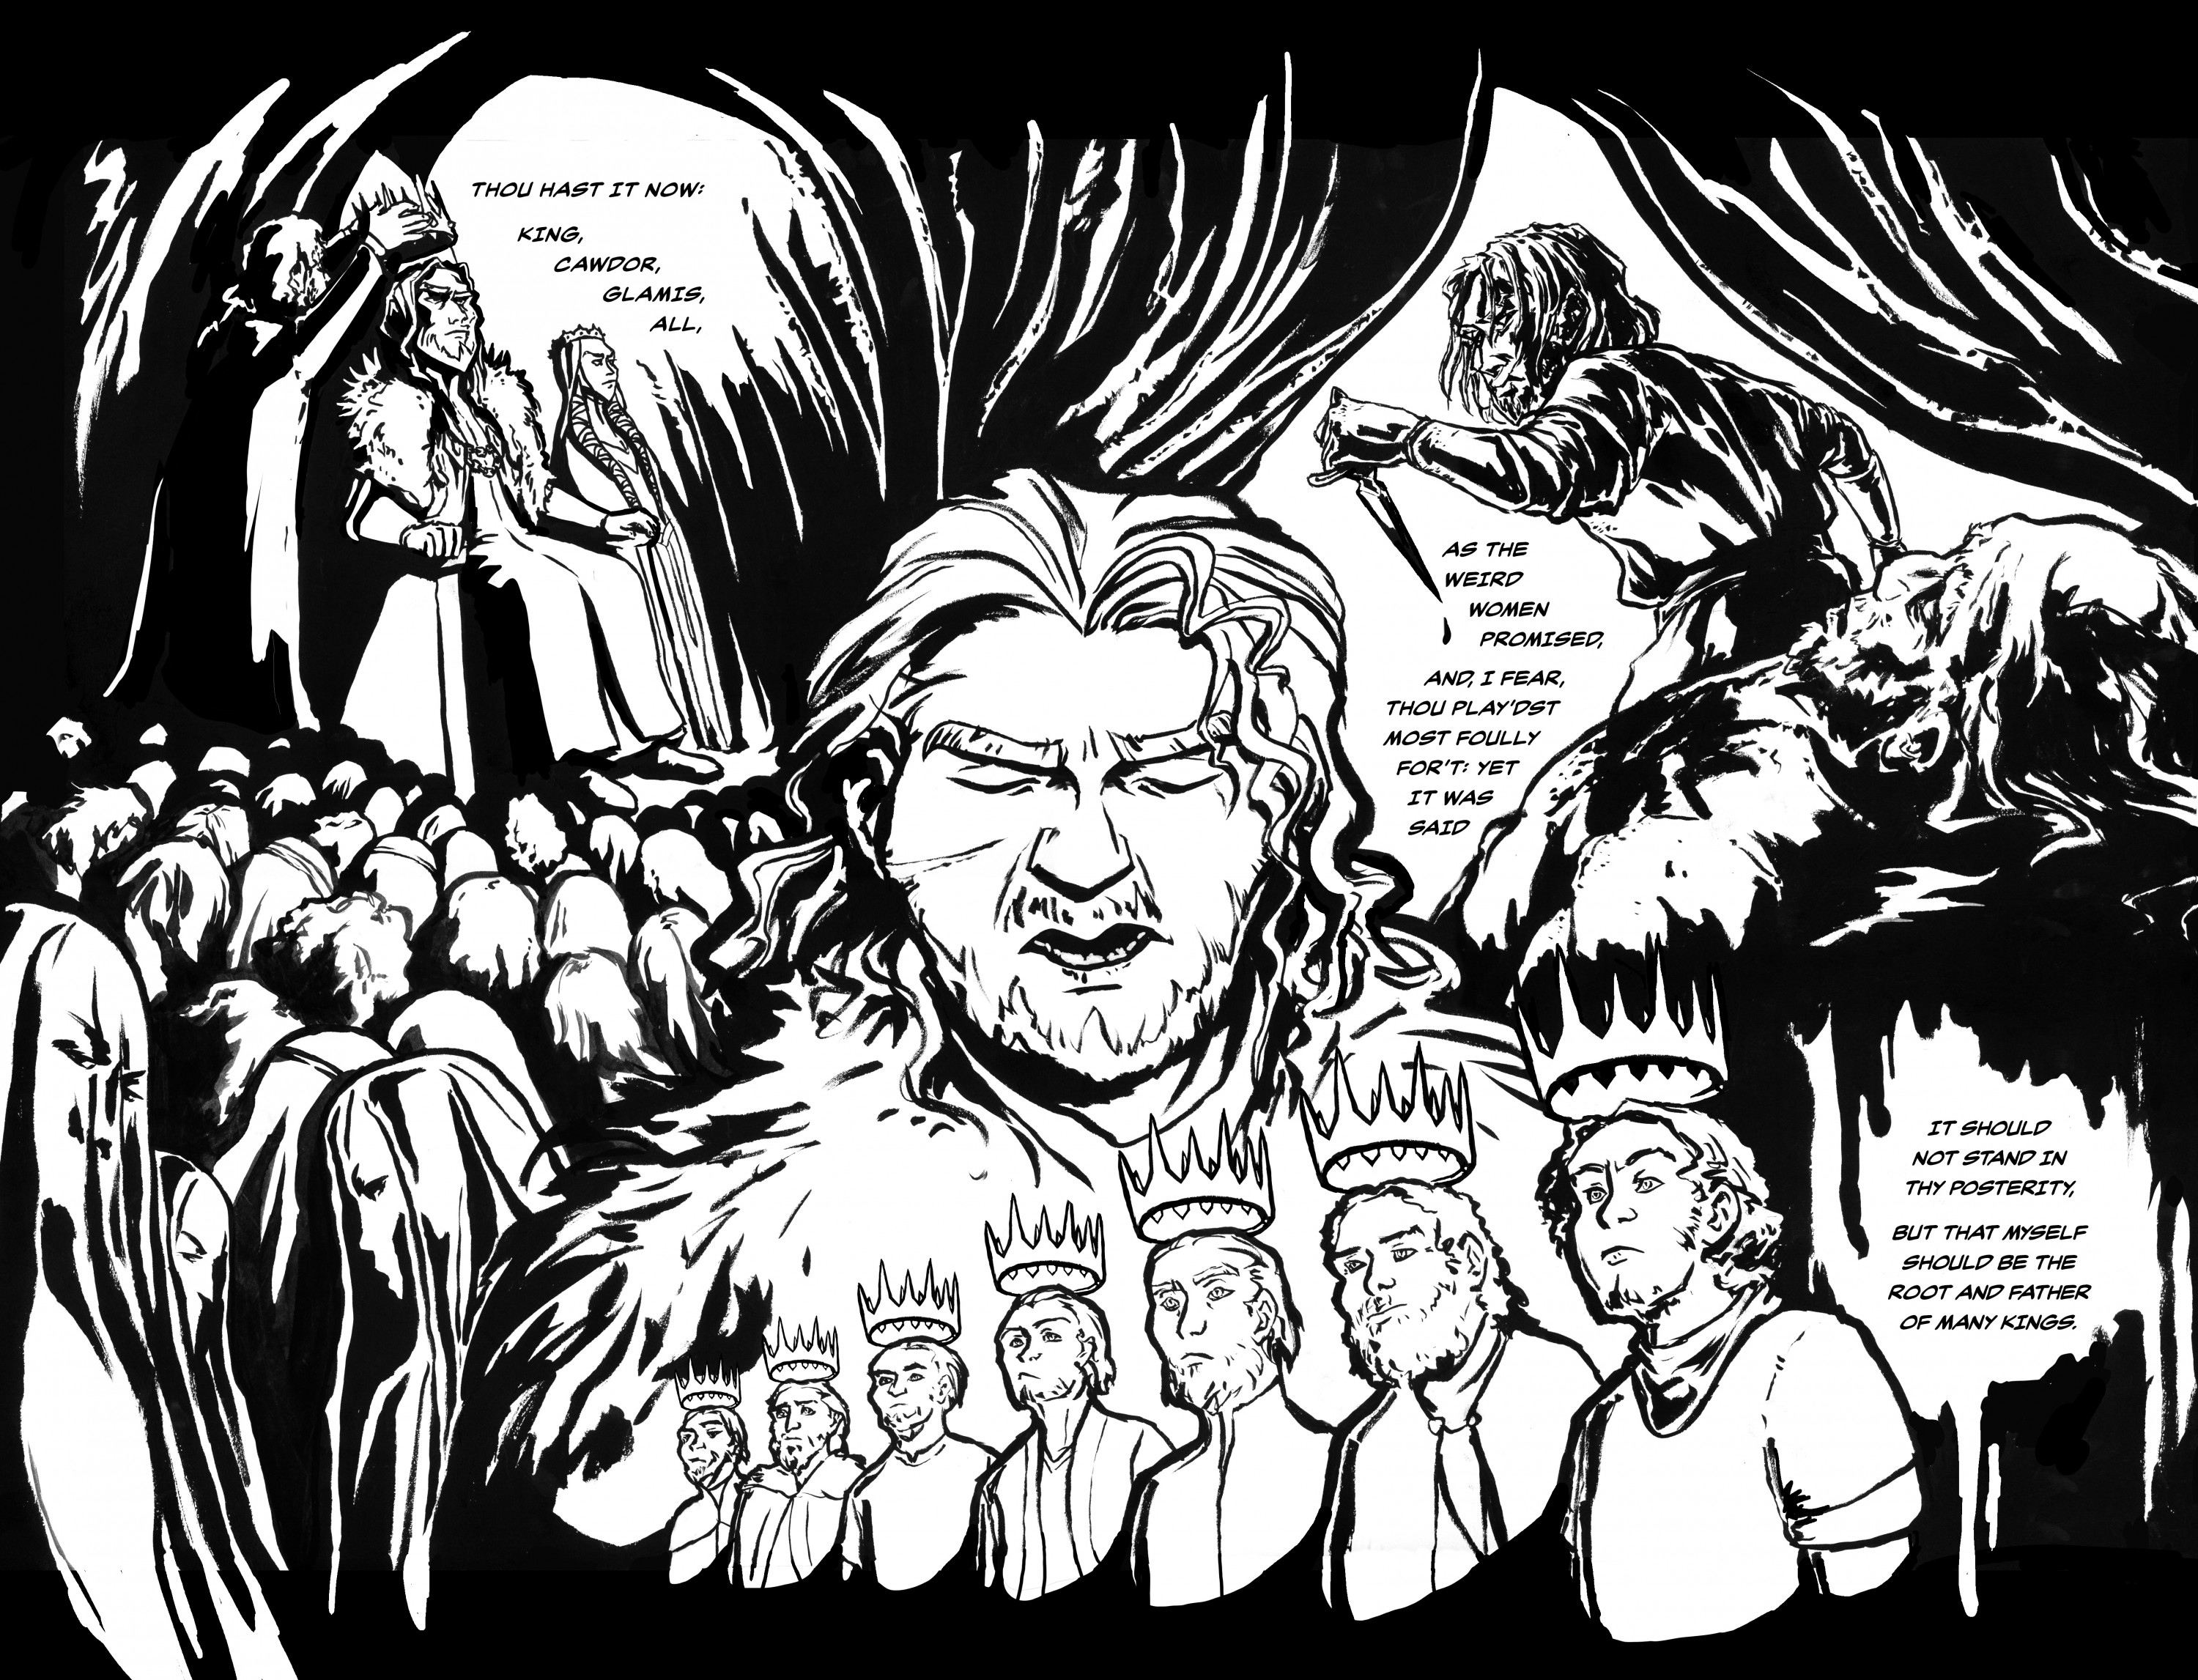 A black and white comic book page of Banquo surrounded by scenes of the events leading up to Act 3. He is narrating these past events.